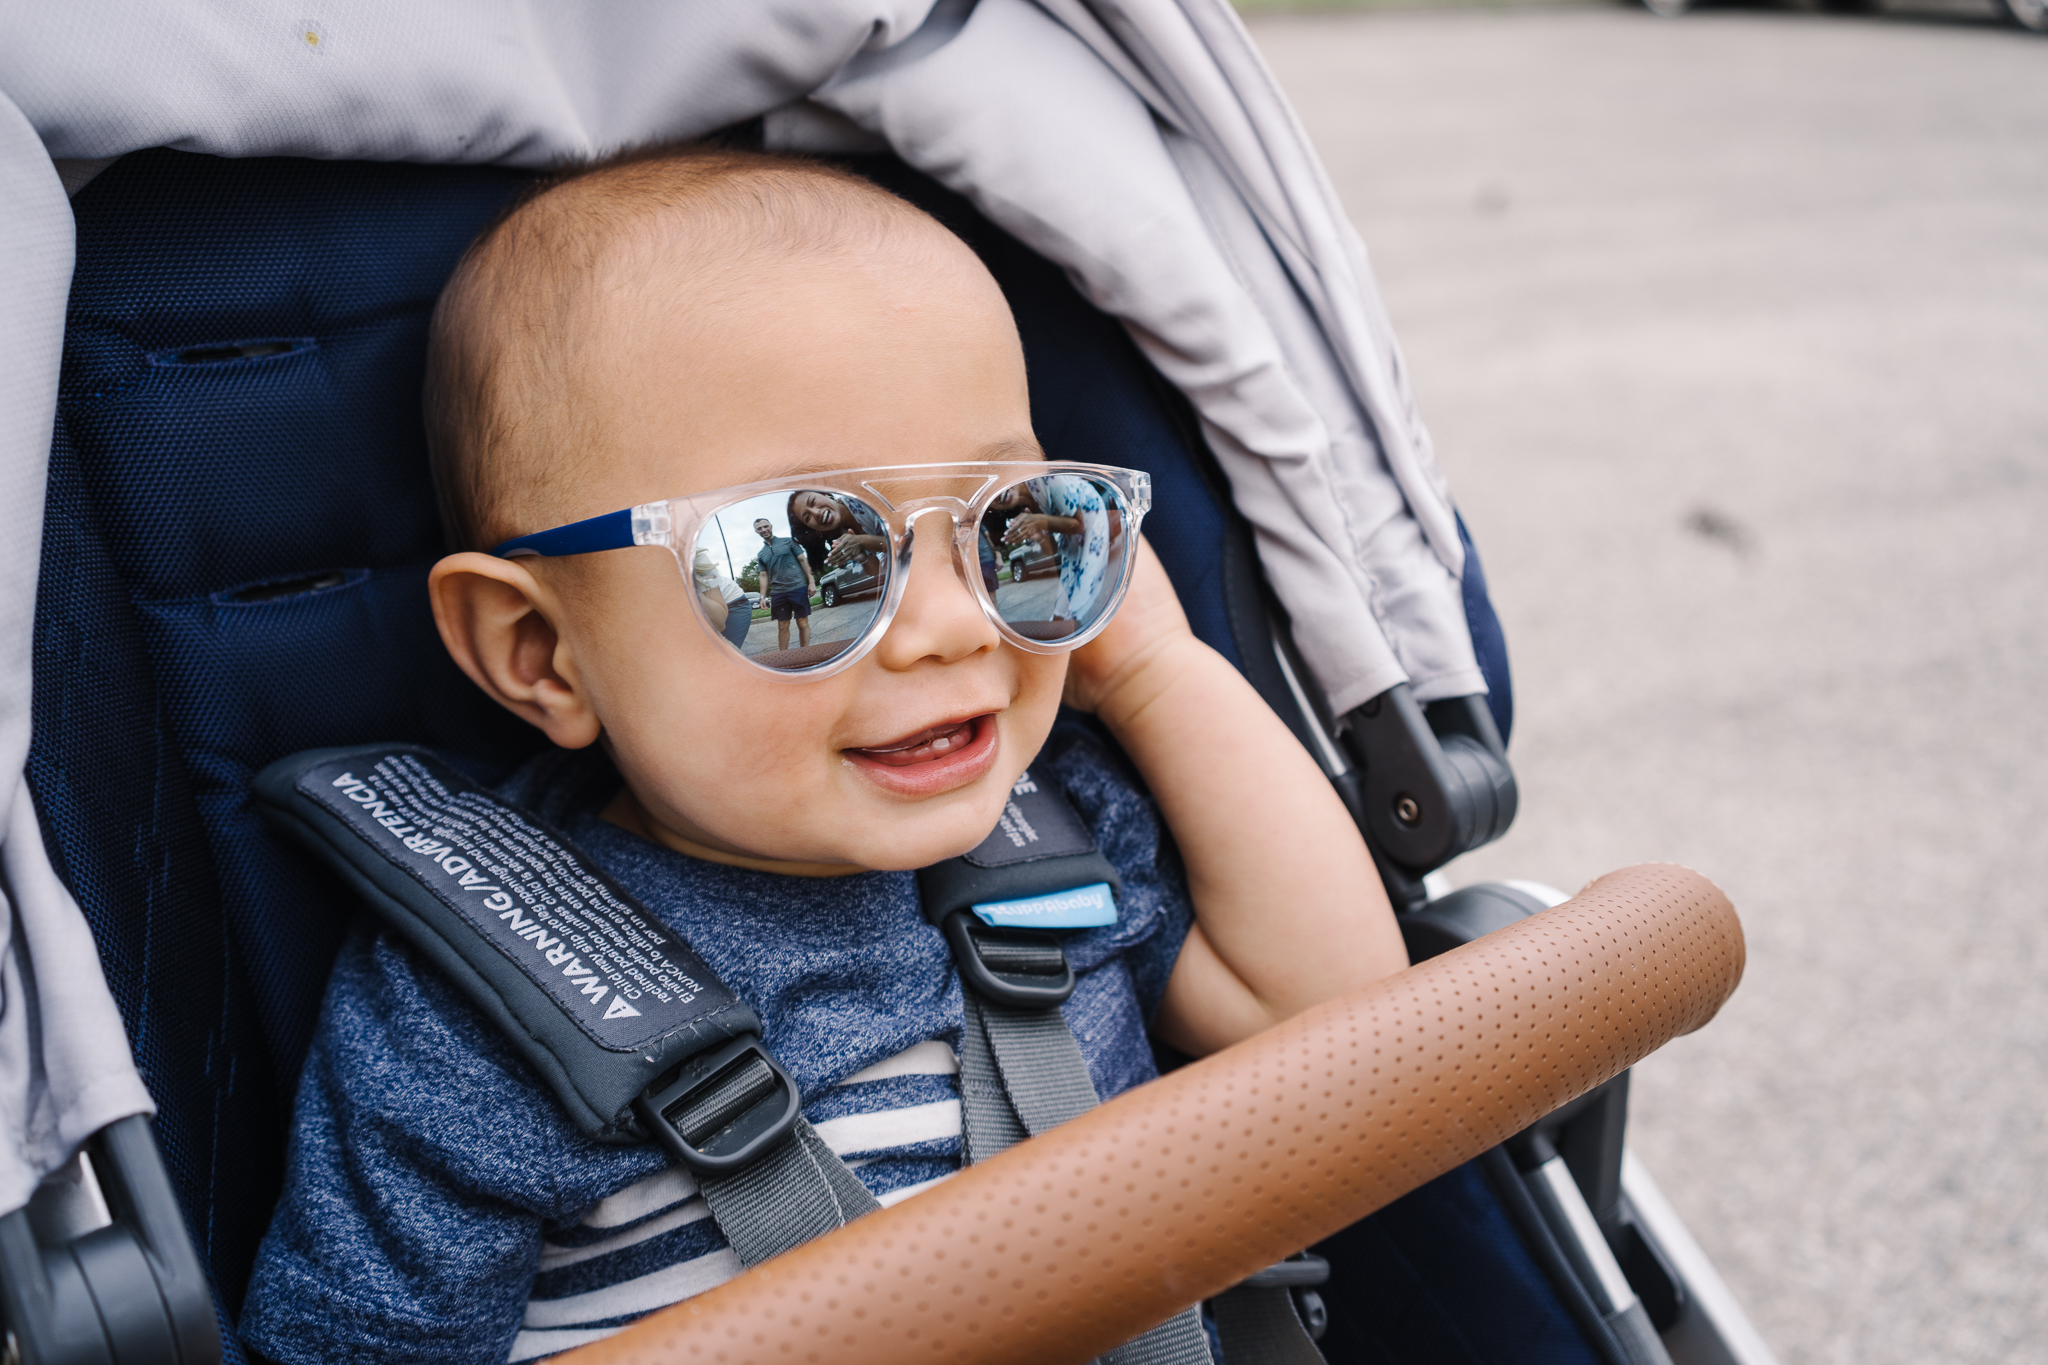 baby sunglasses are the cutest.